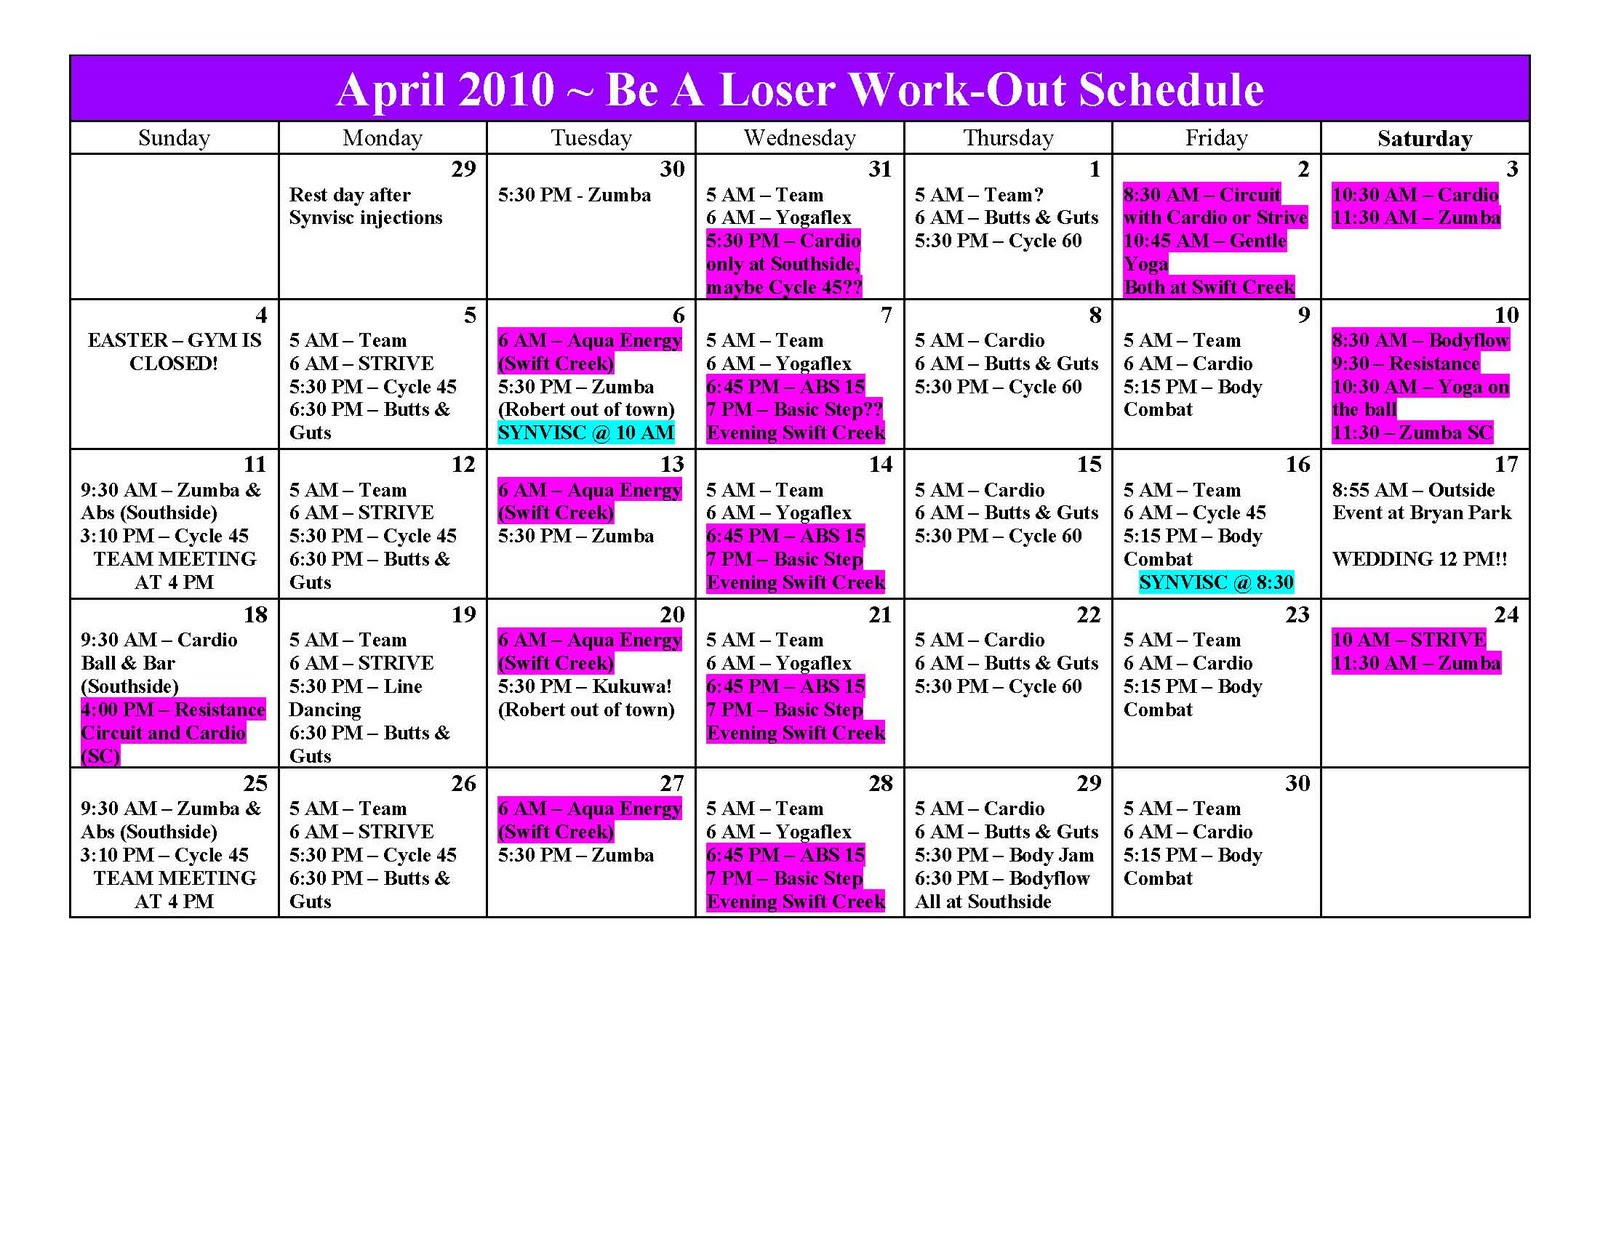 Being a Loser in Richmond, VA: April 2010 Work-Out Calendar!!